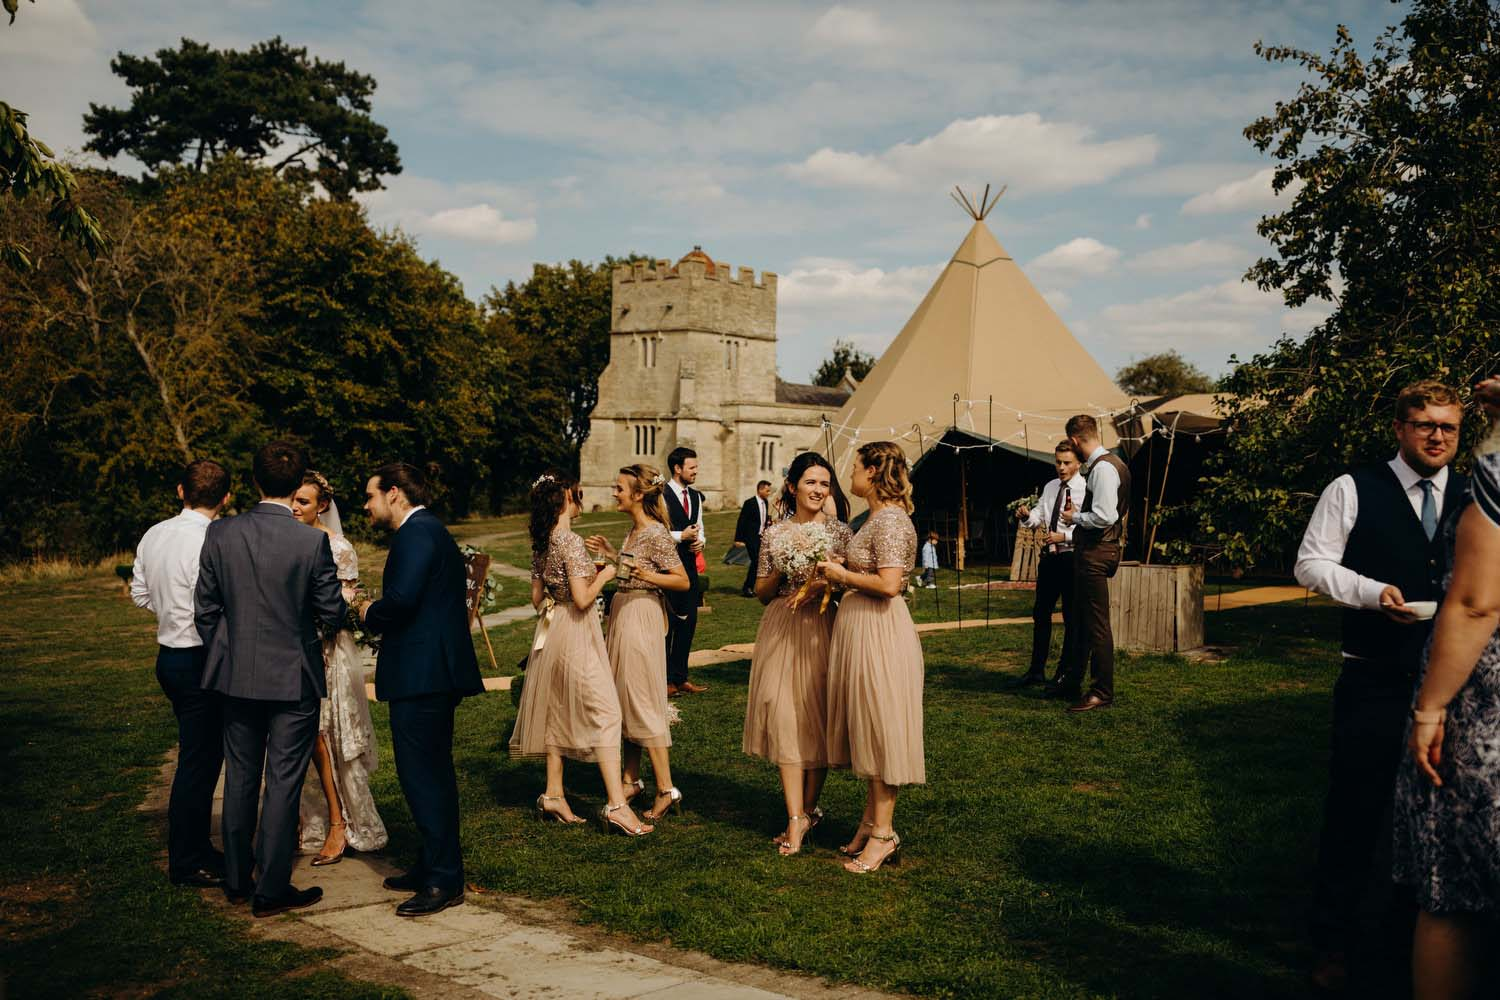 Tipi wedding in Buckinhamshire